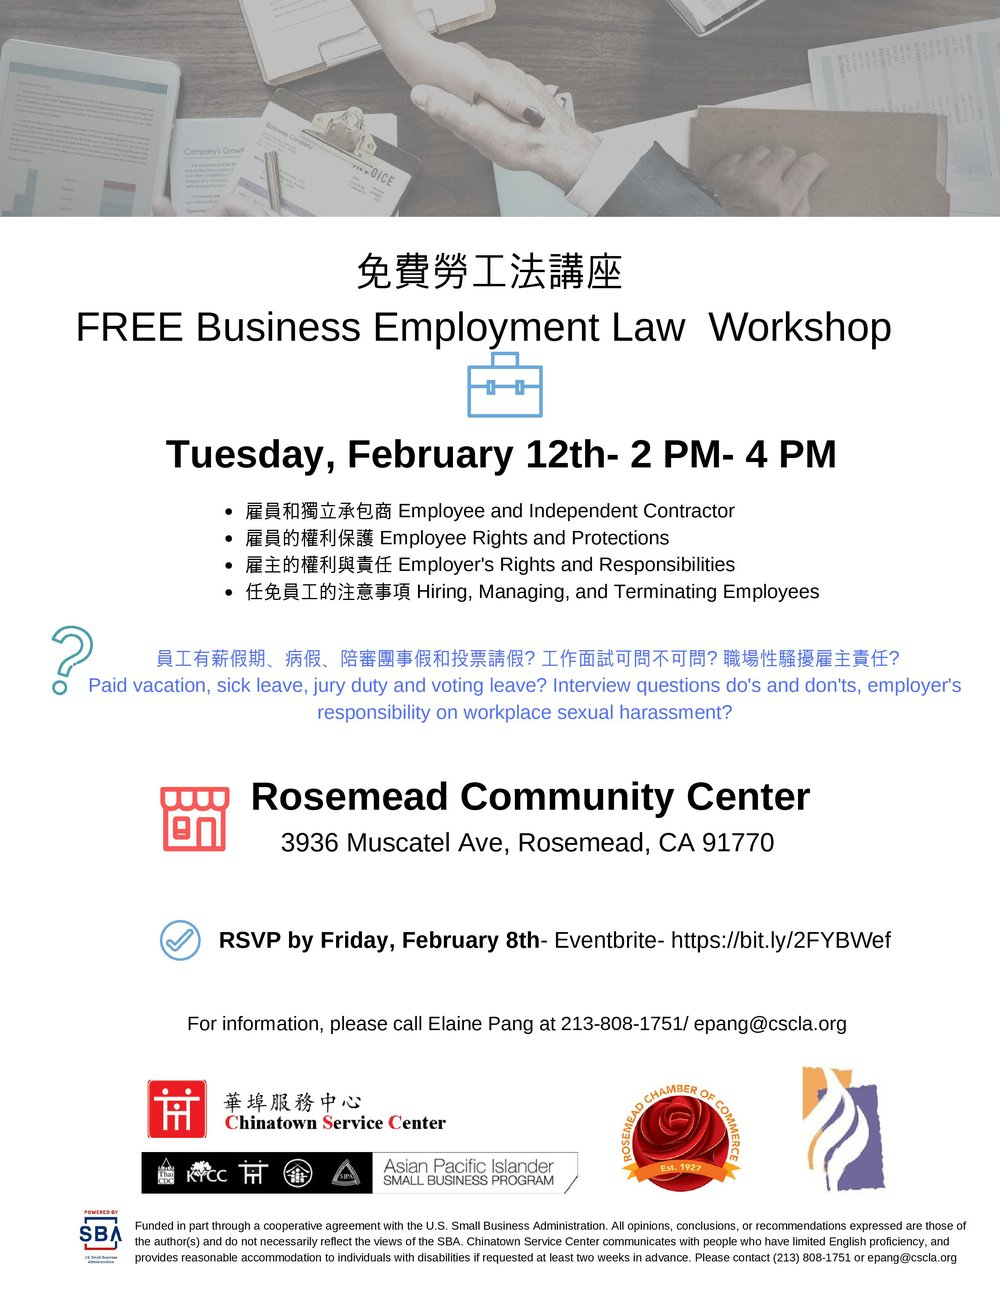 Business employment law workshop - February 12th, 2019